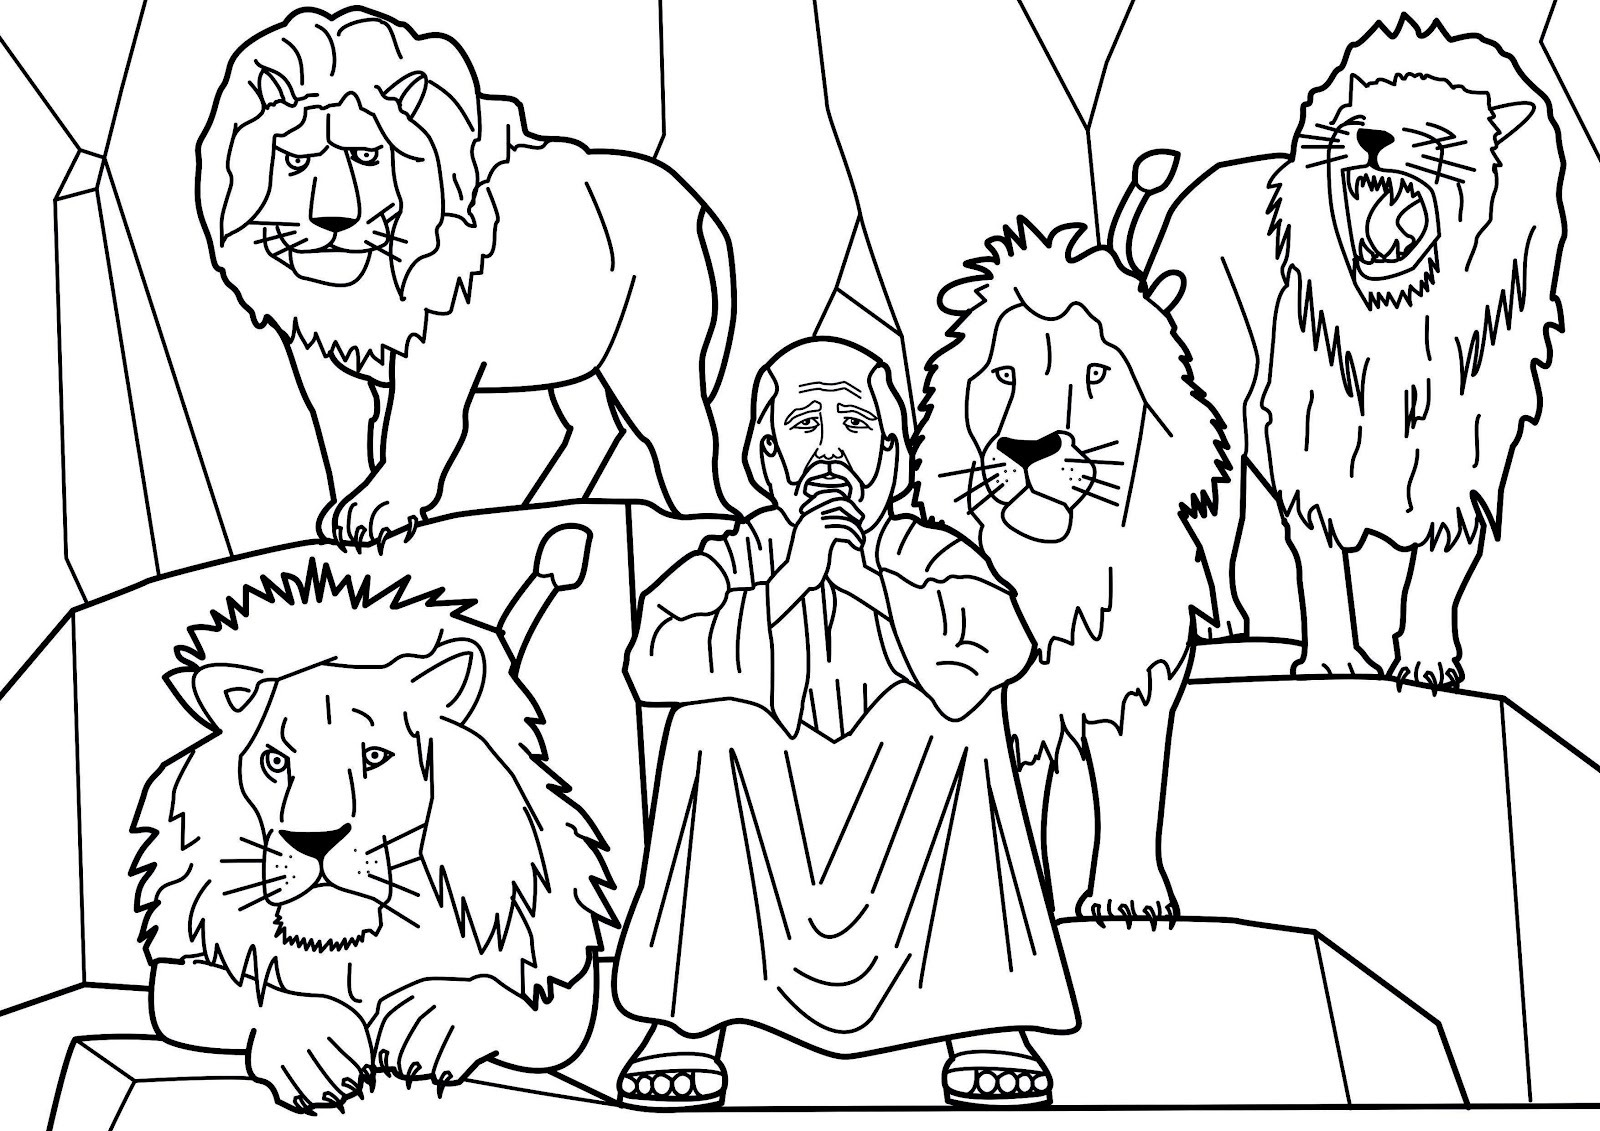 Coloring Pages For Spanish Class - NEO Coloring